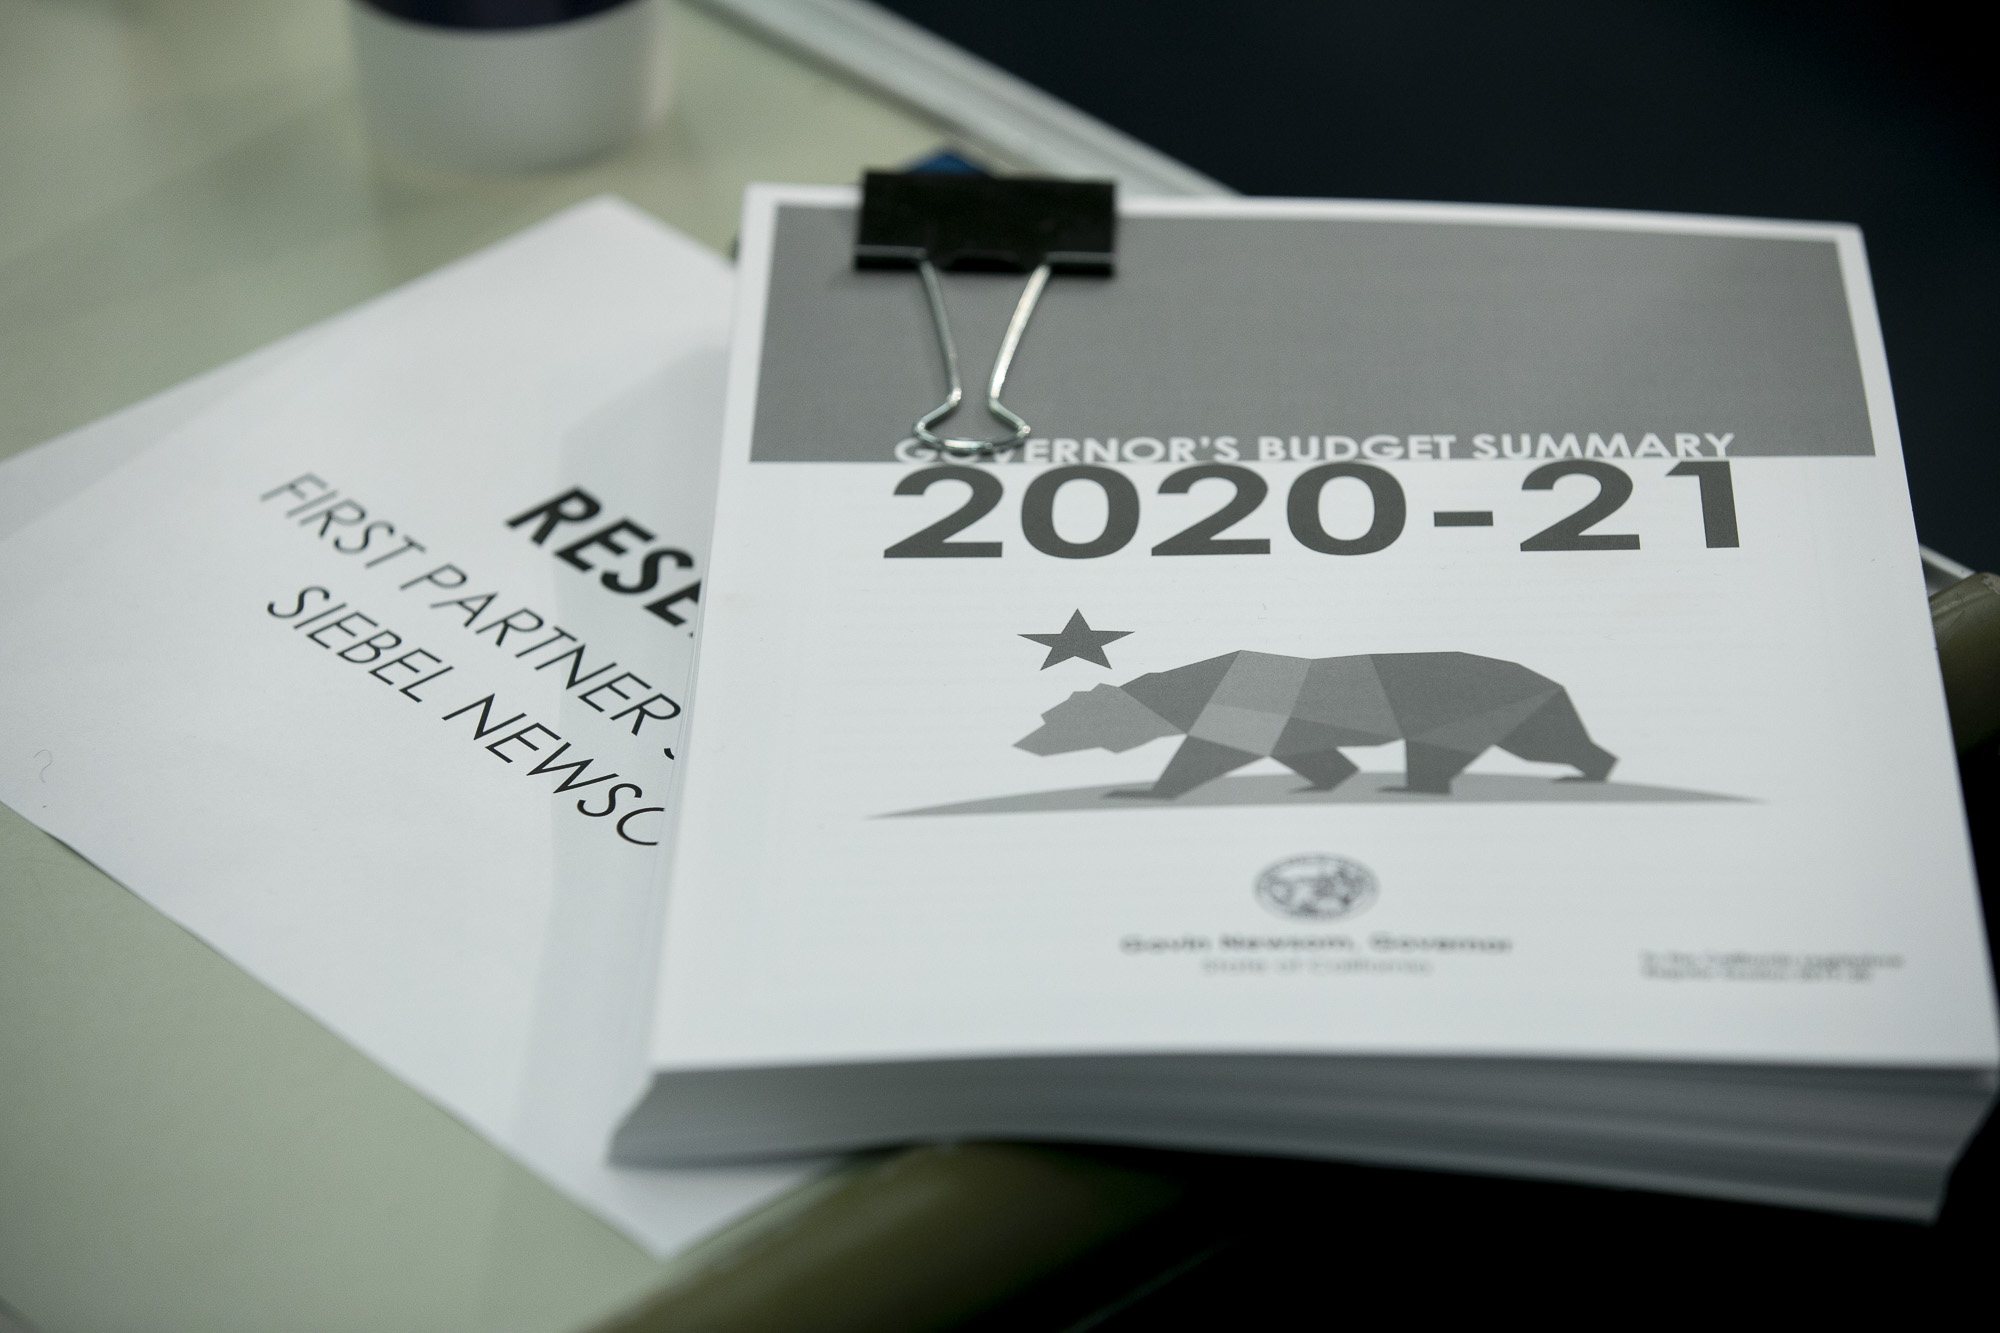 A copy of the 2020-21 budget summary.